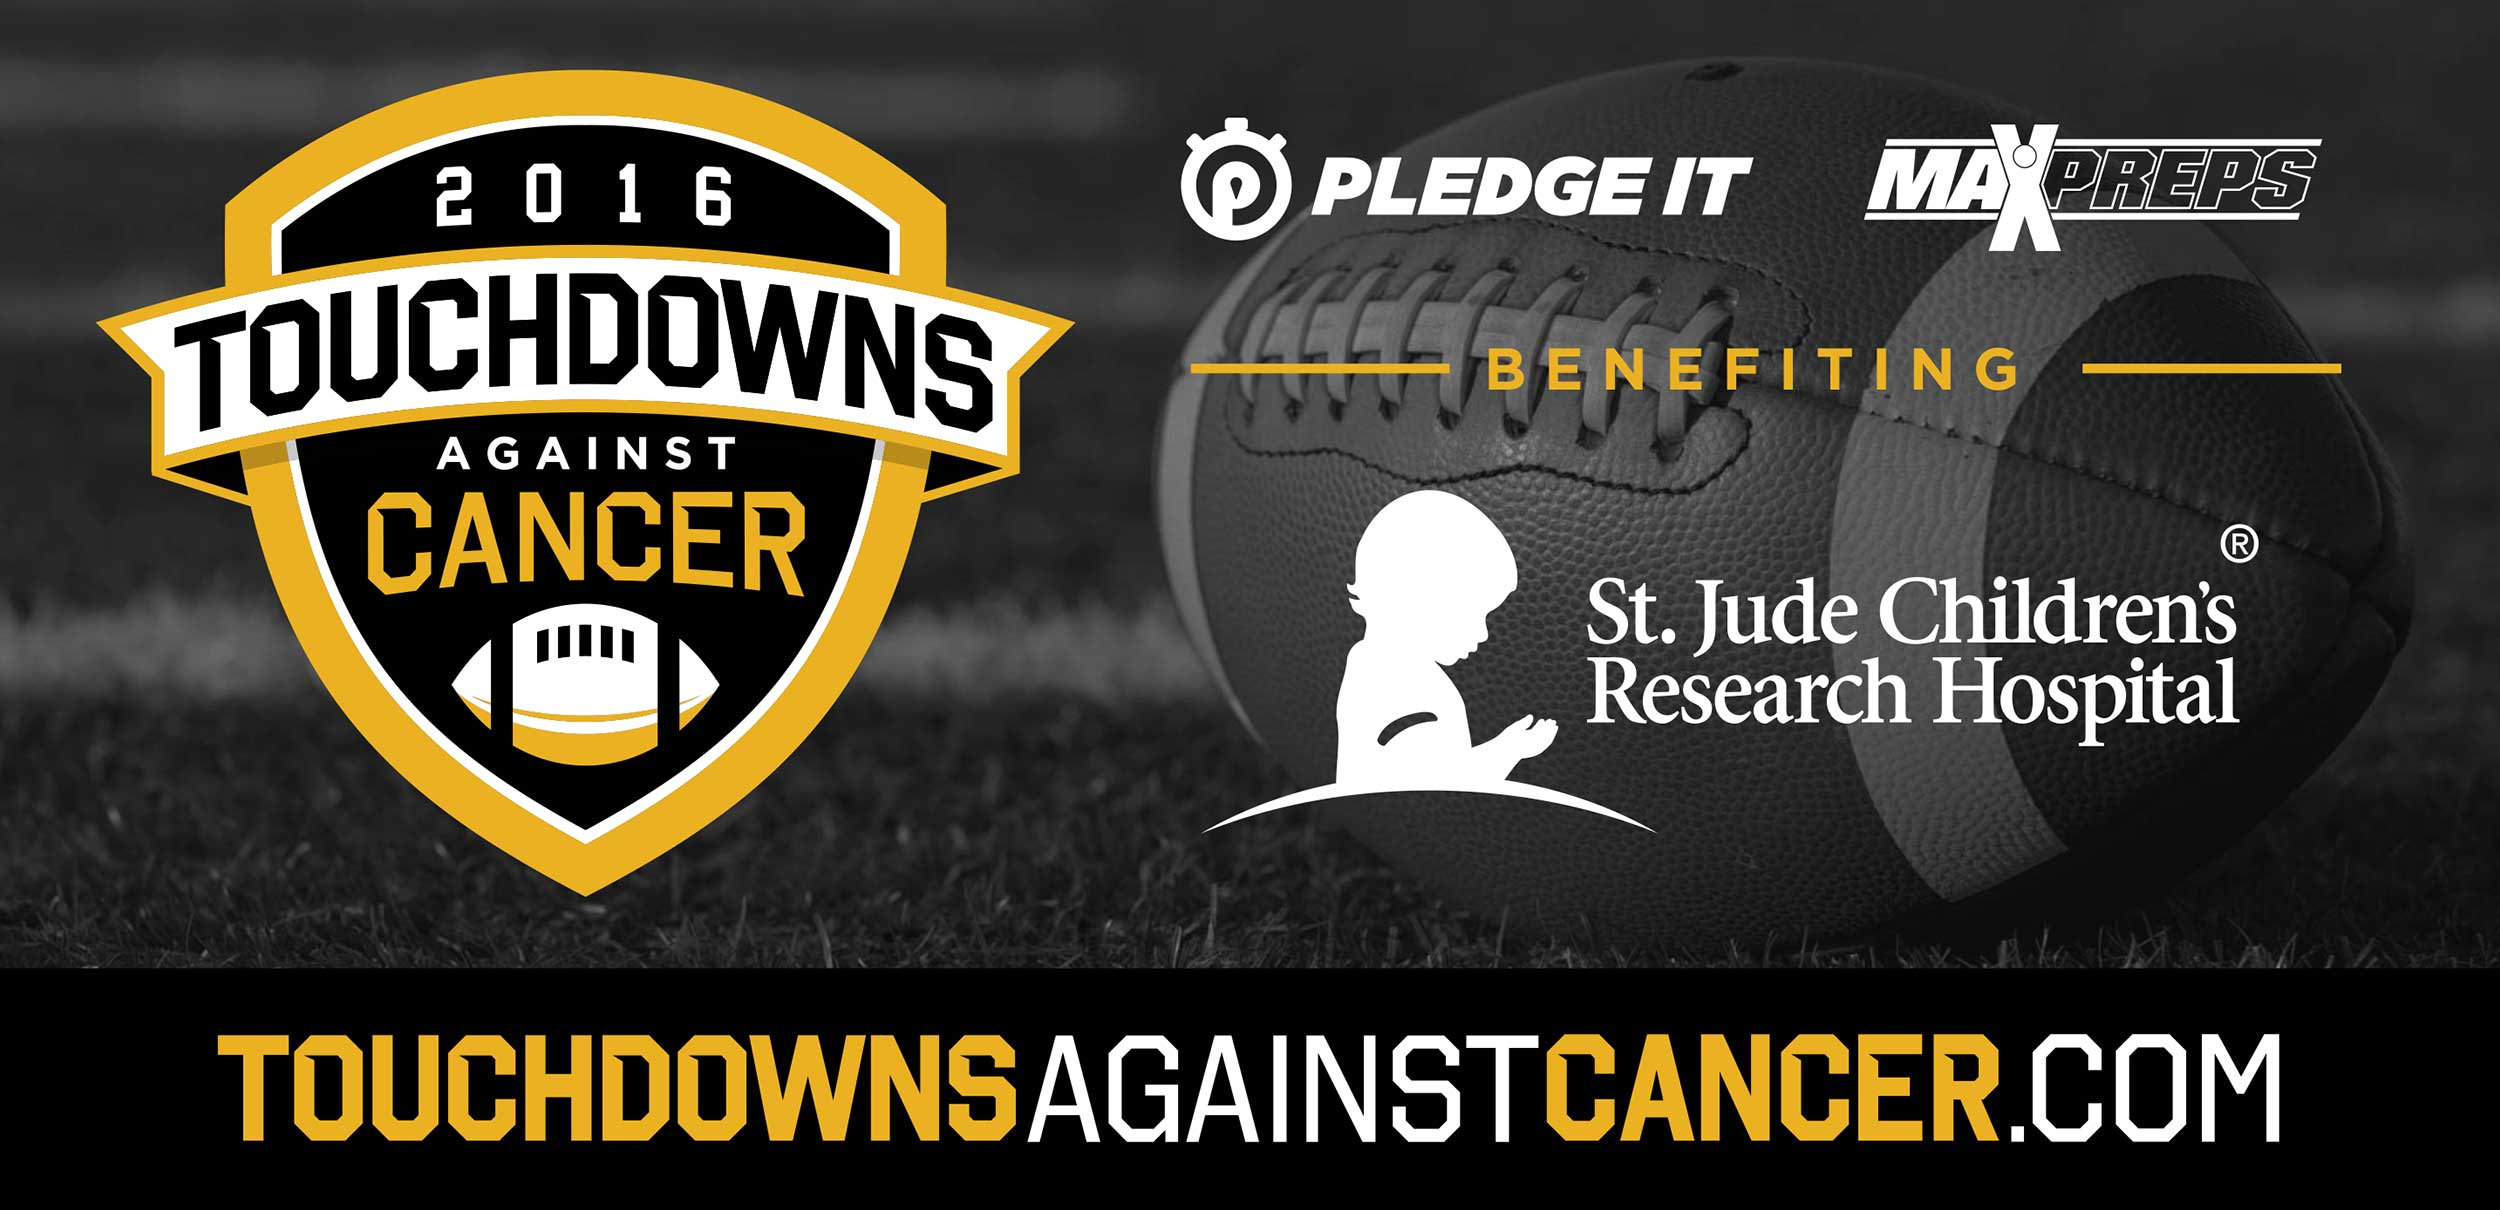 Touchdowns Against Cancer